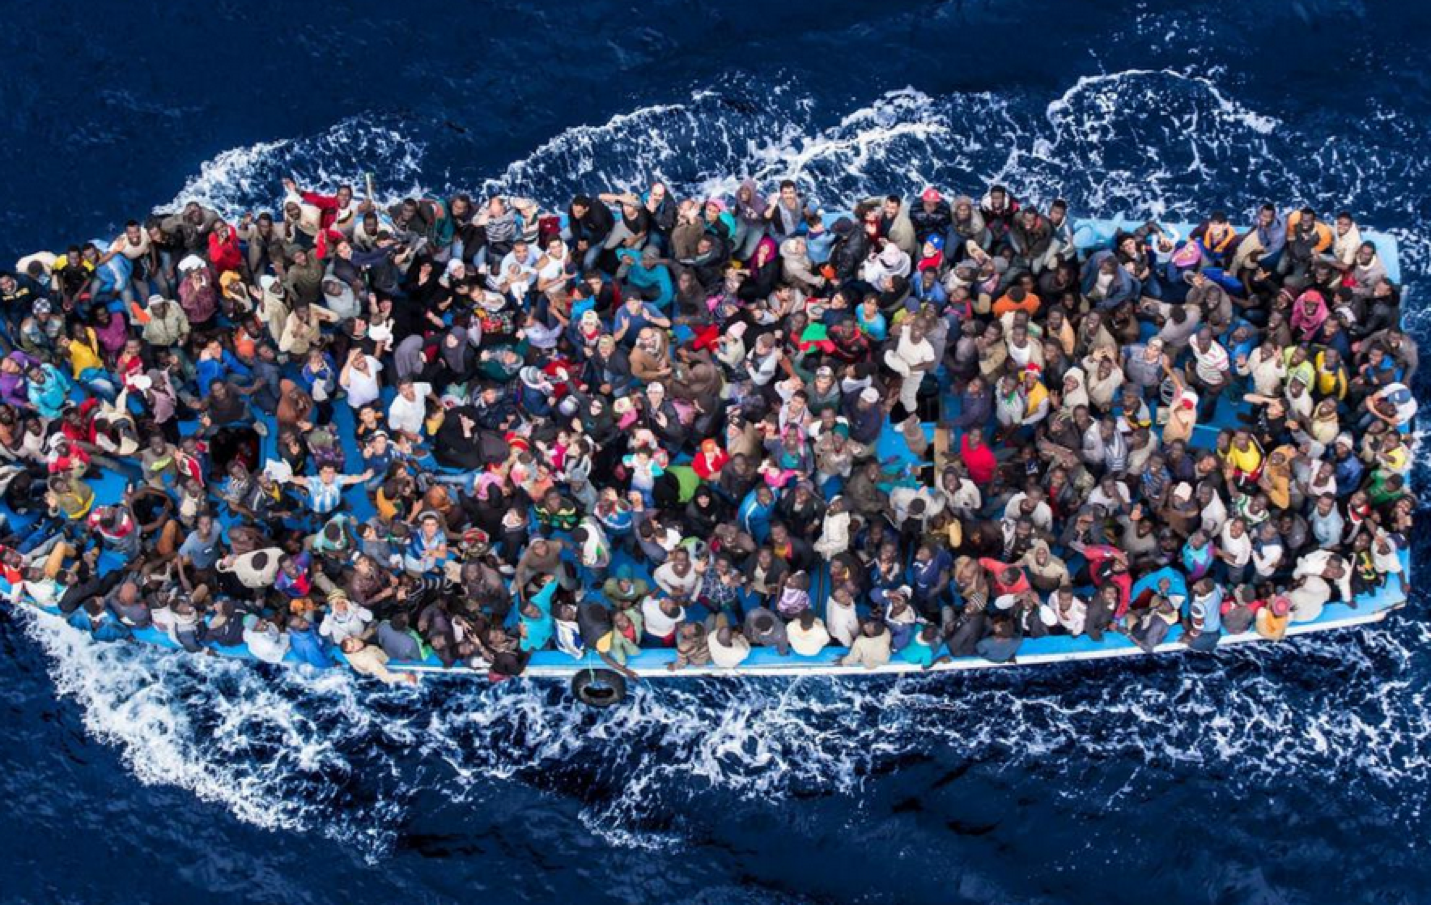 Overhead shot of refugees in a crowded boat